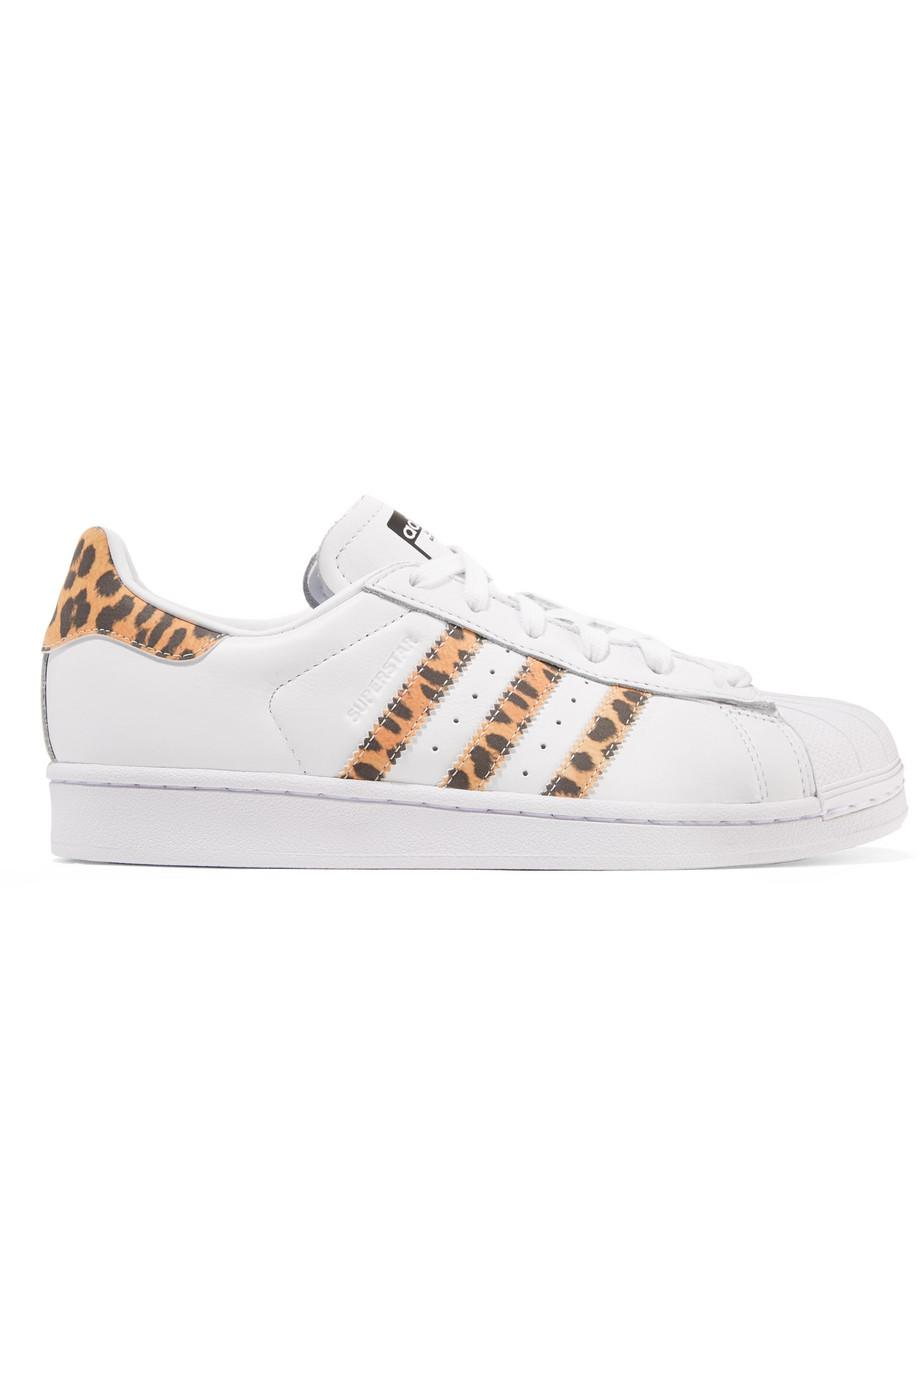 Superstar Leopard Print-trimmed Leather Sneakers - White adidas Originals p7NMMLR